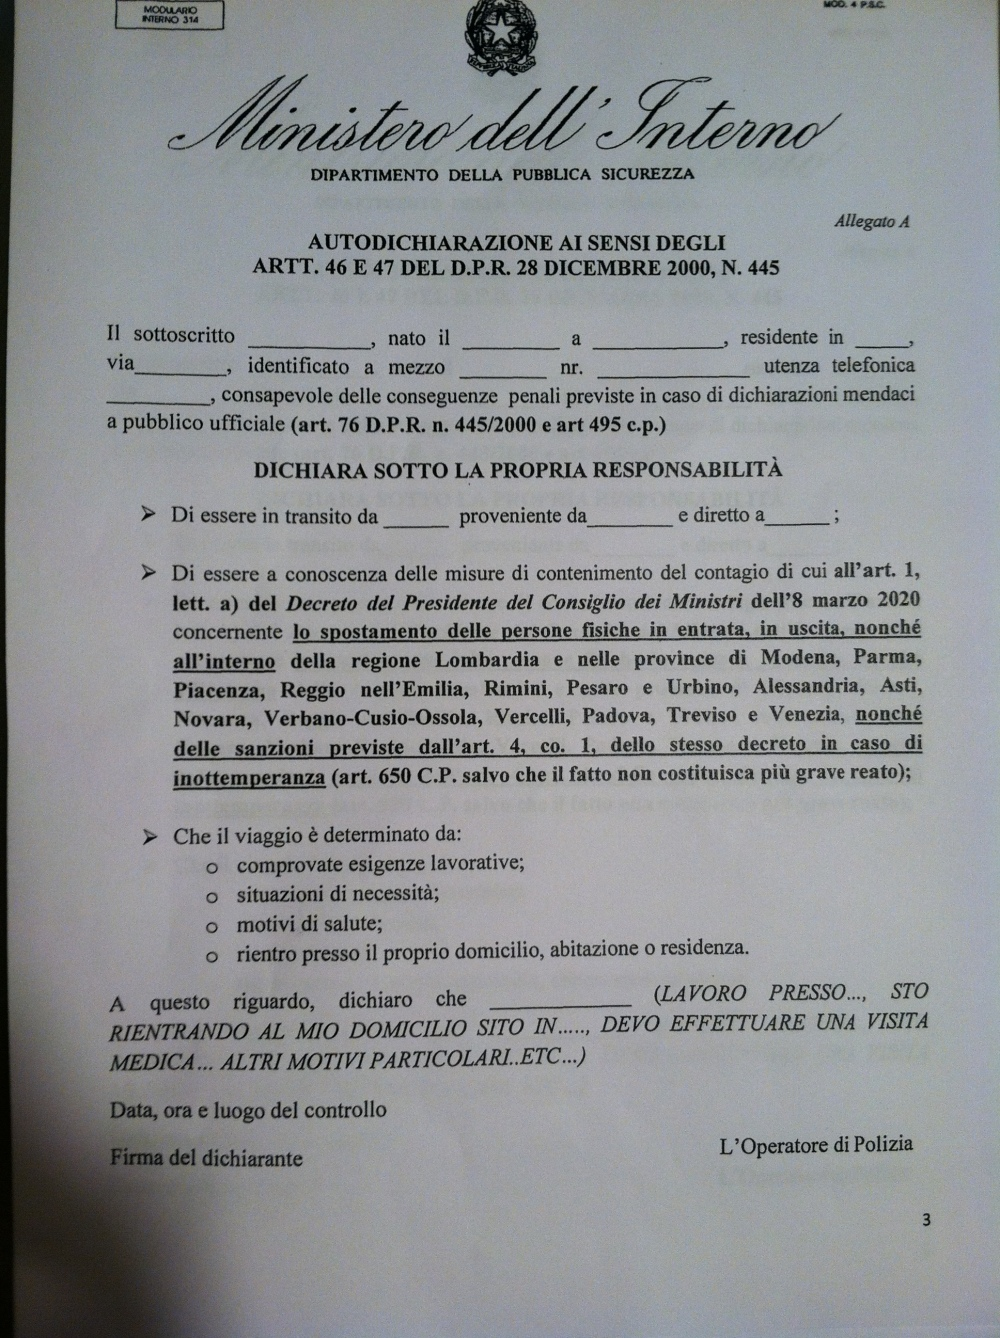 Italian Document for Traveling During Pandemic Restriction